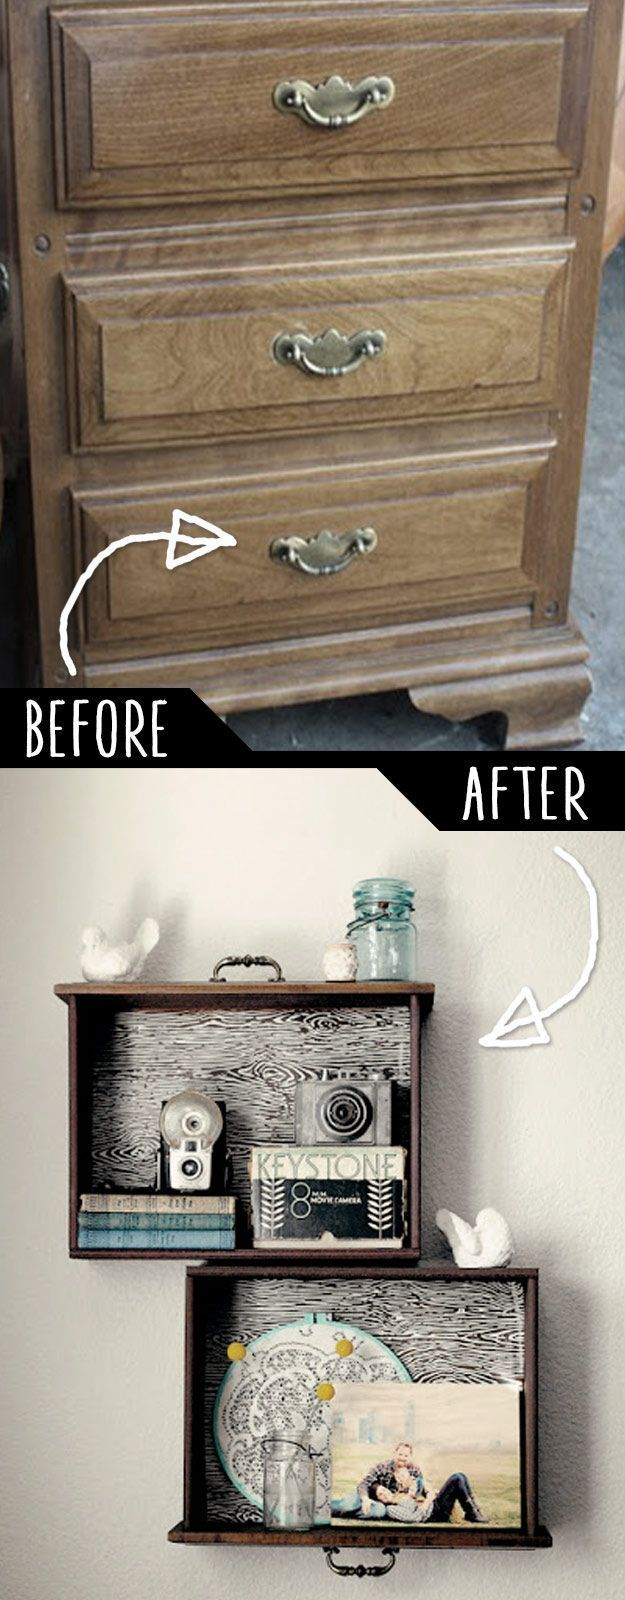 DIY Furnishings Hacks | DIY Drawer Cabinets | Cool Concepts For Inventive Do It Yoursel…